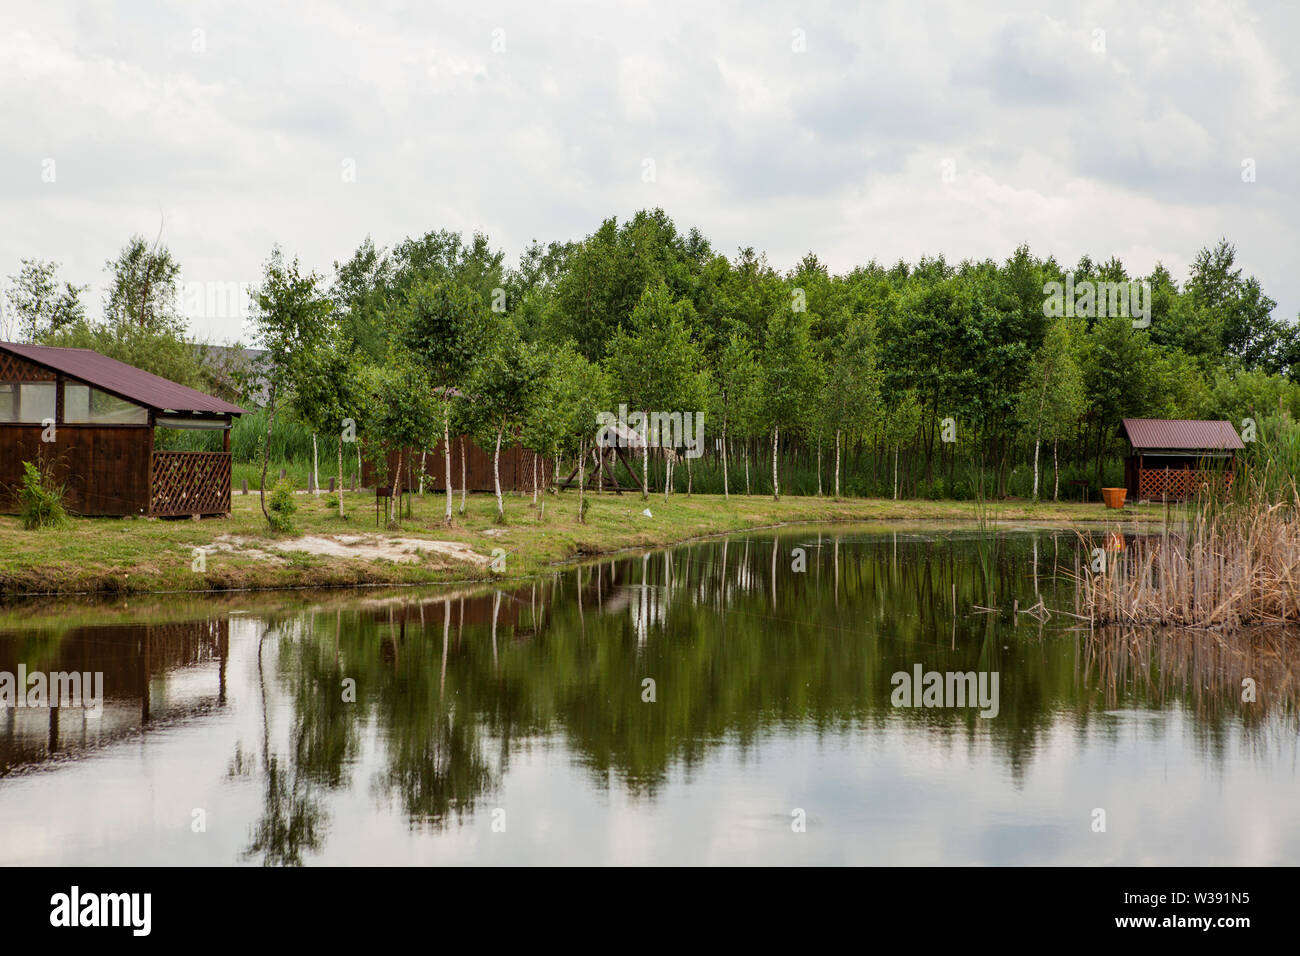 Holiday house near the lake. The concept of fishing and recreation. - Stock Image